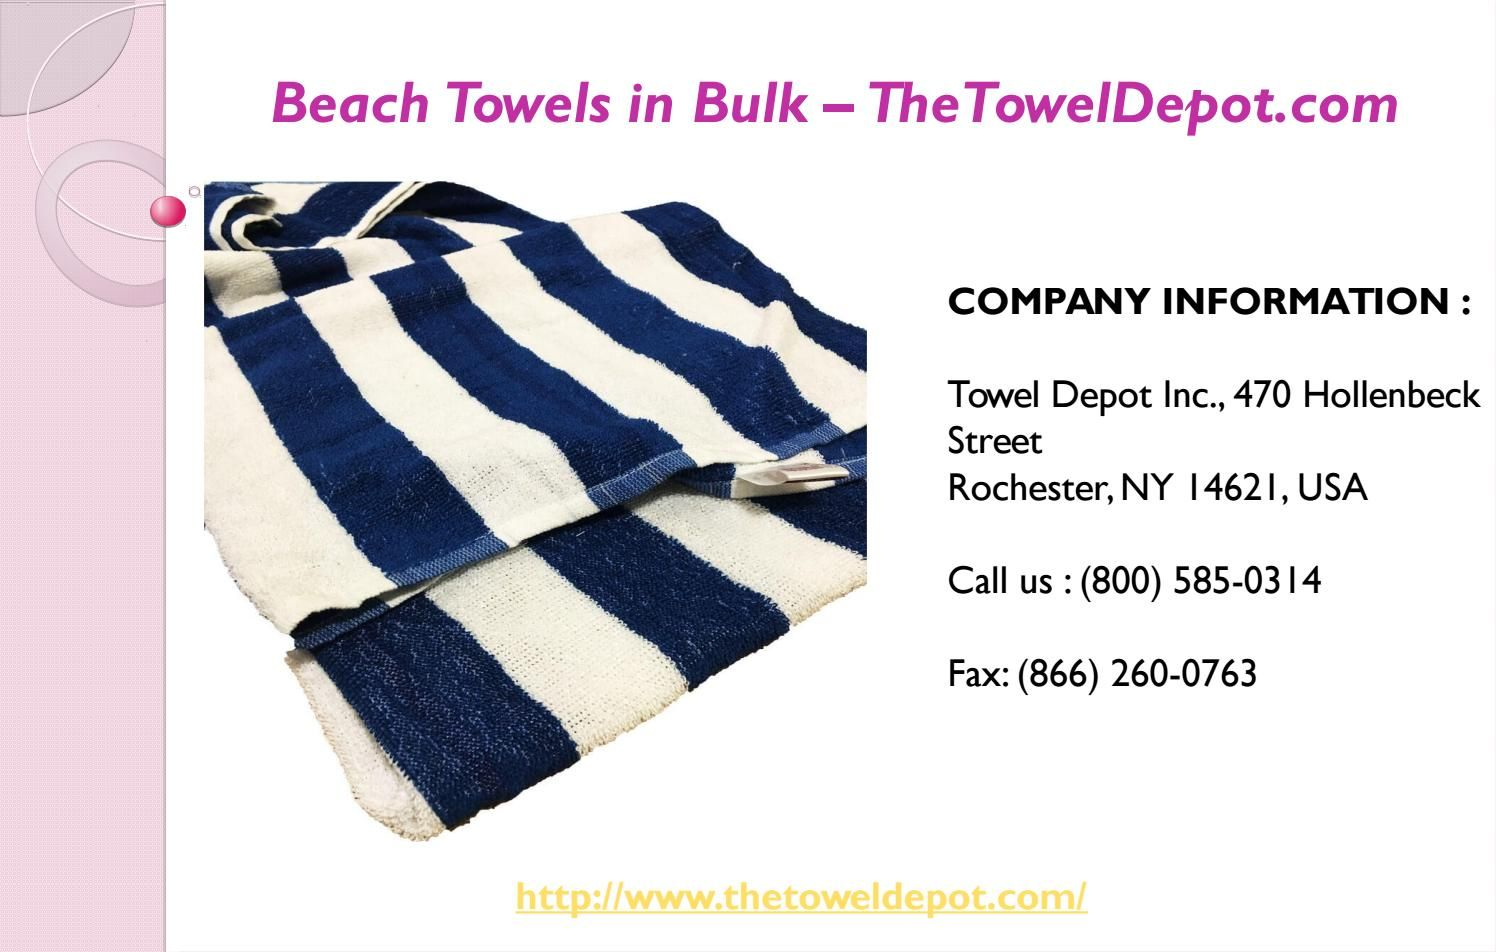 Beach Towels In Bulk With Images Beach Towels Towel